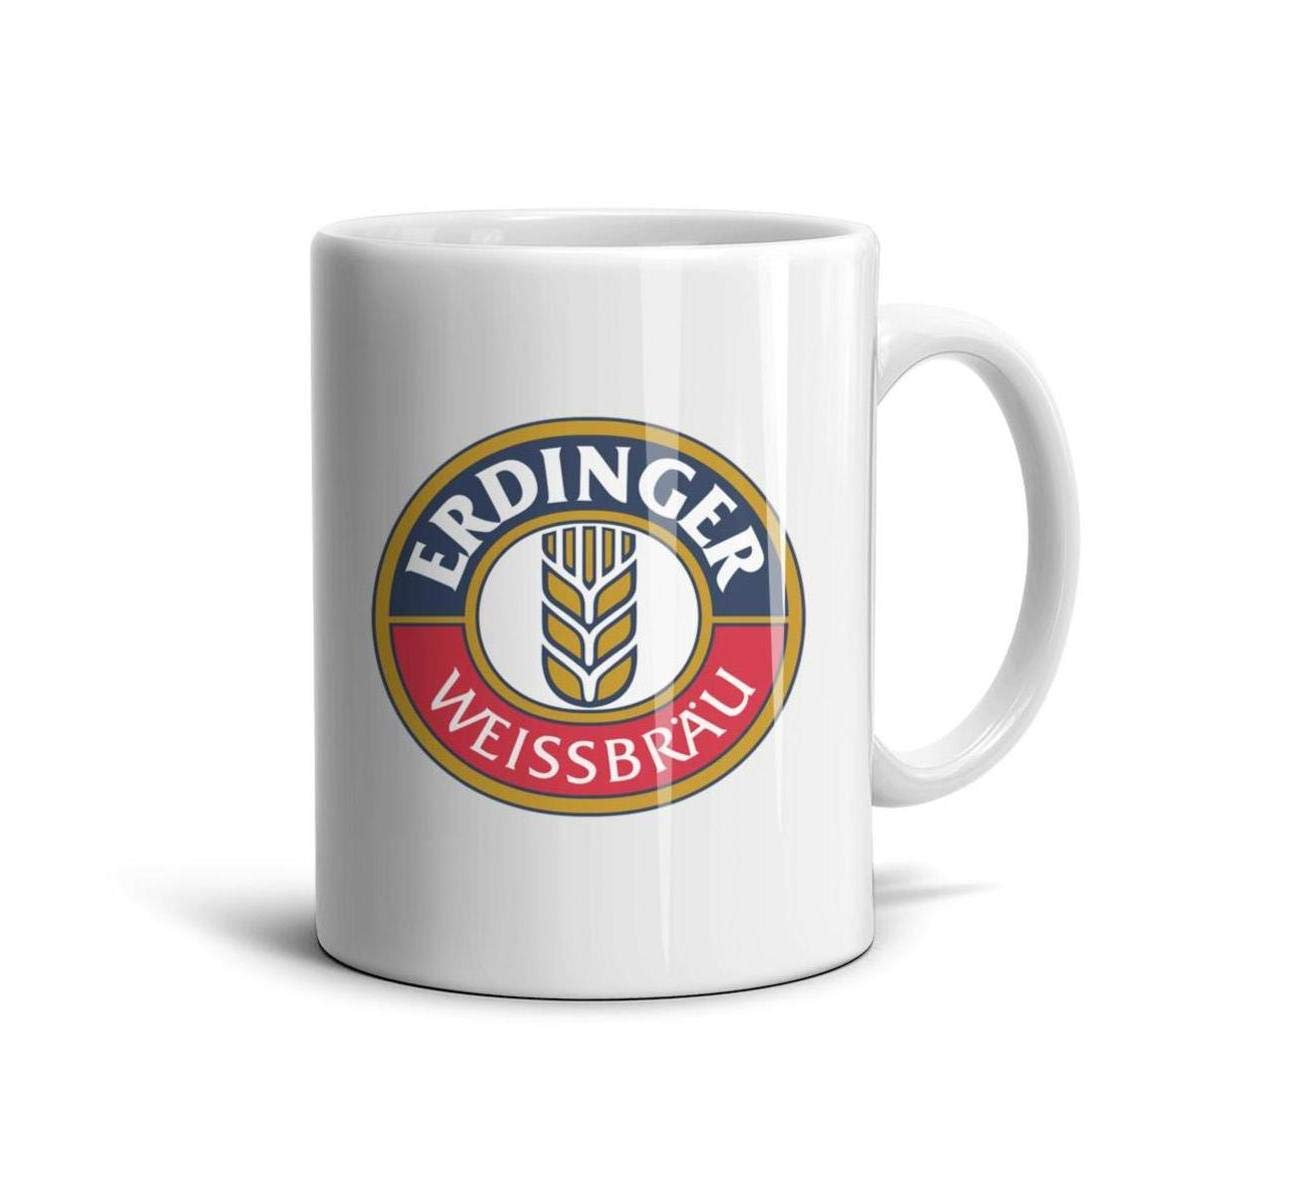 HIYITUTA Erdinger-Logo Mug Souvenir Unique Mug 11 Oz Holidays Mugs Friends Wife